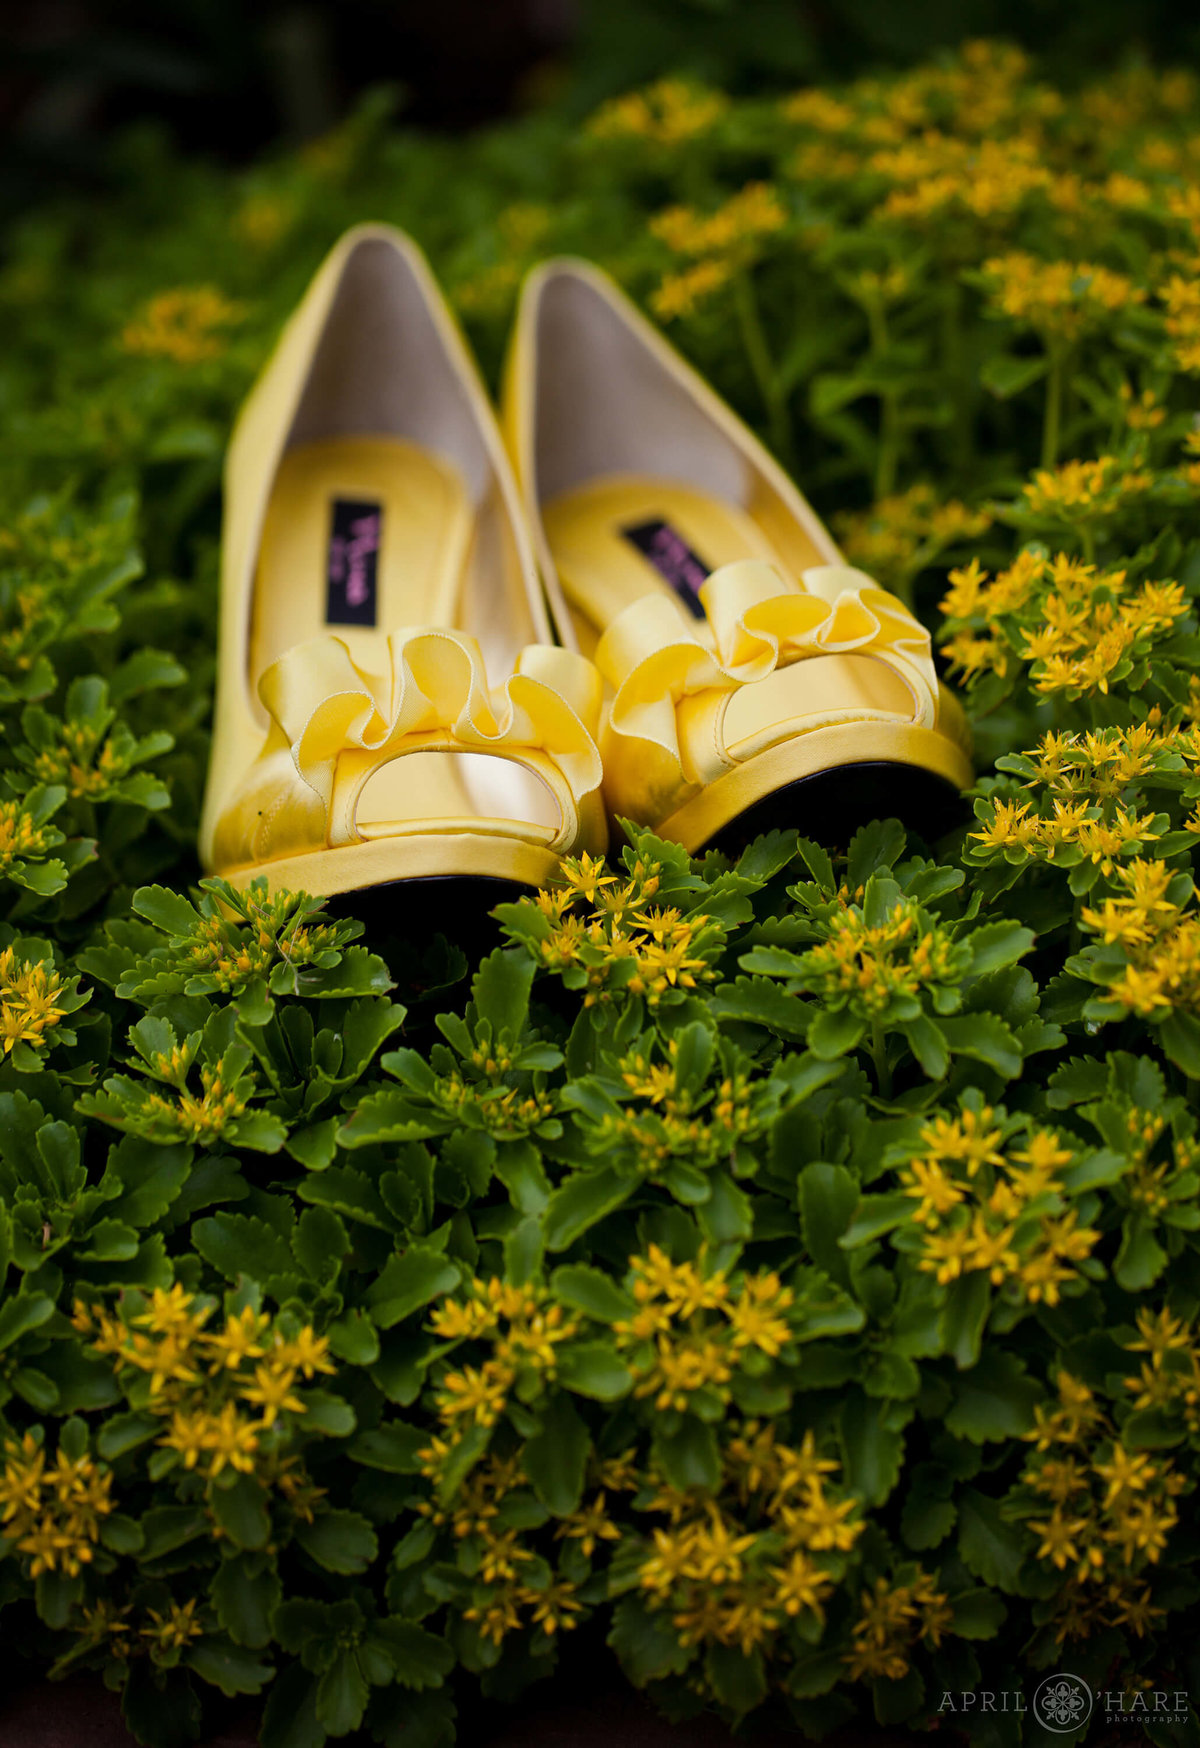 Colorado Wedding photographer detail photo of Sunshine yellow heels in the garden at Chatfield Farms Denver Botanic Gardens